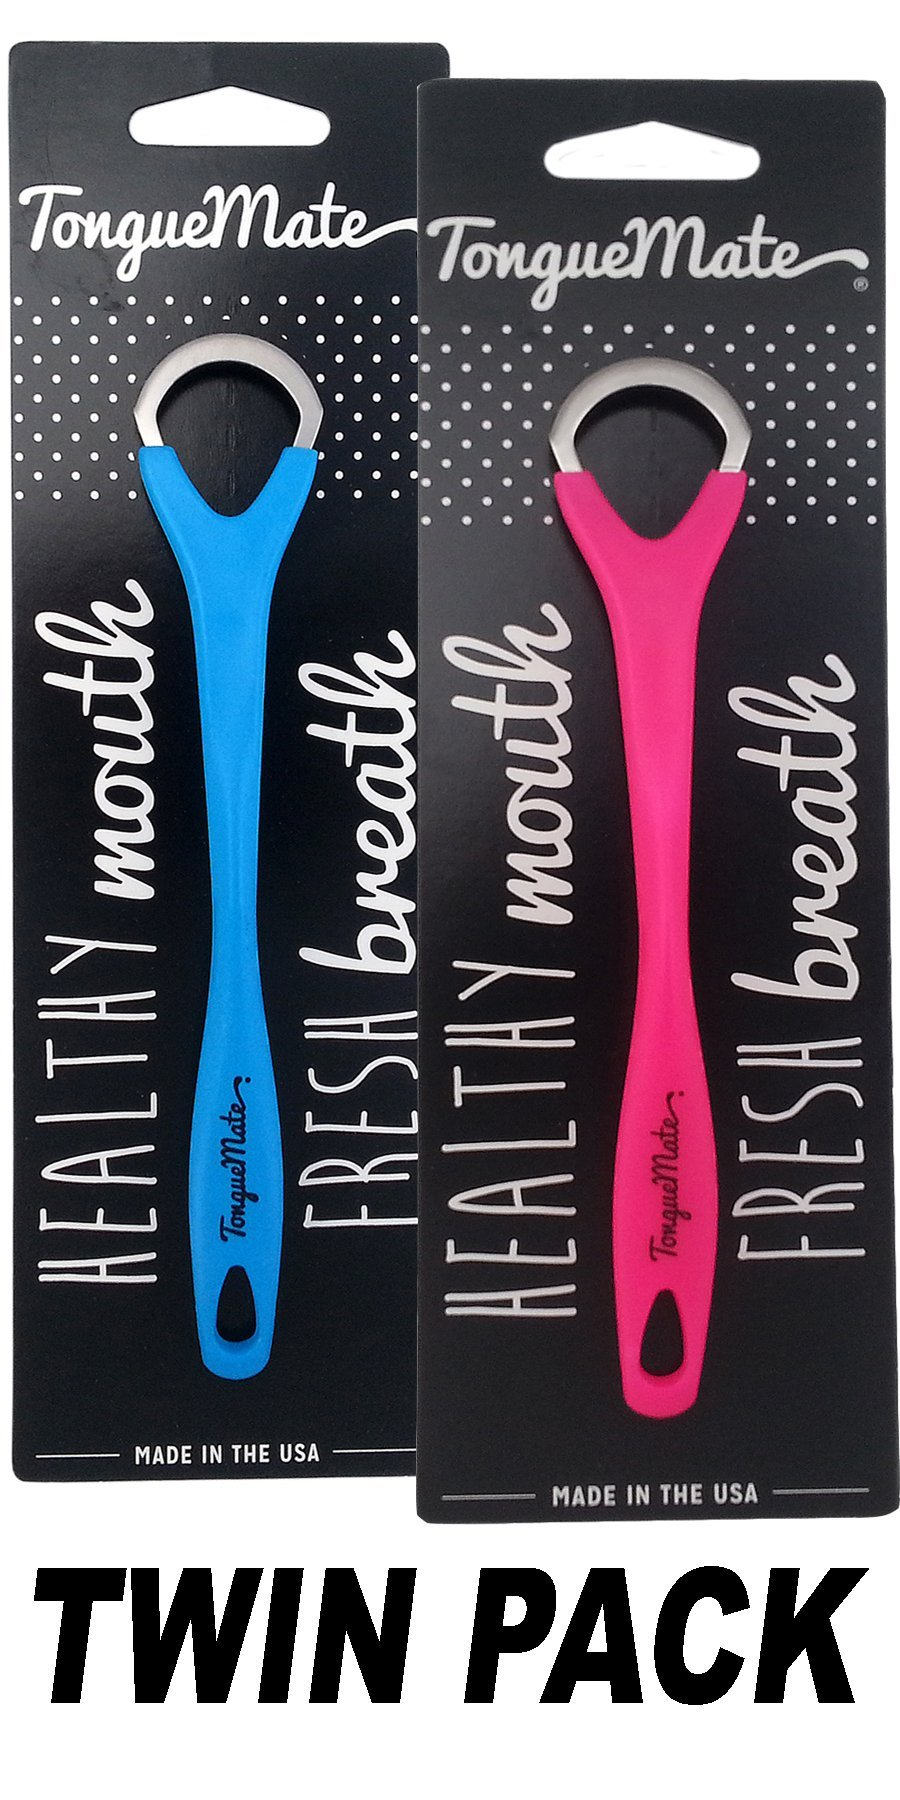 Tongue Mate Twin Pack